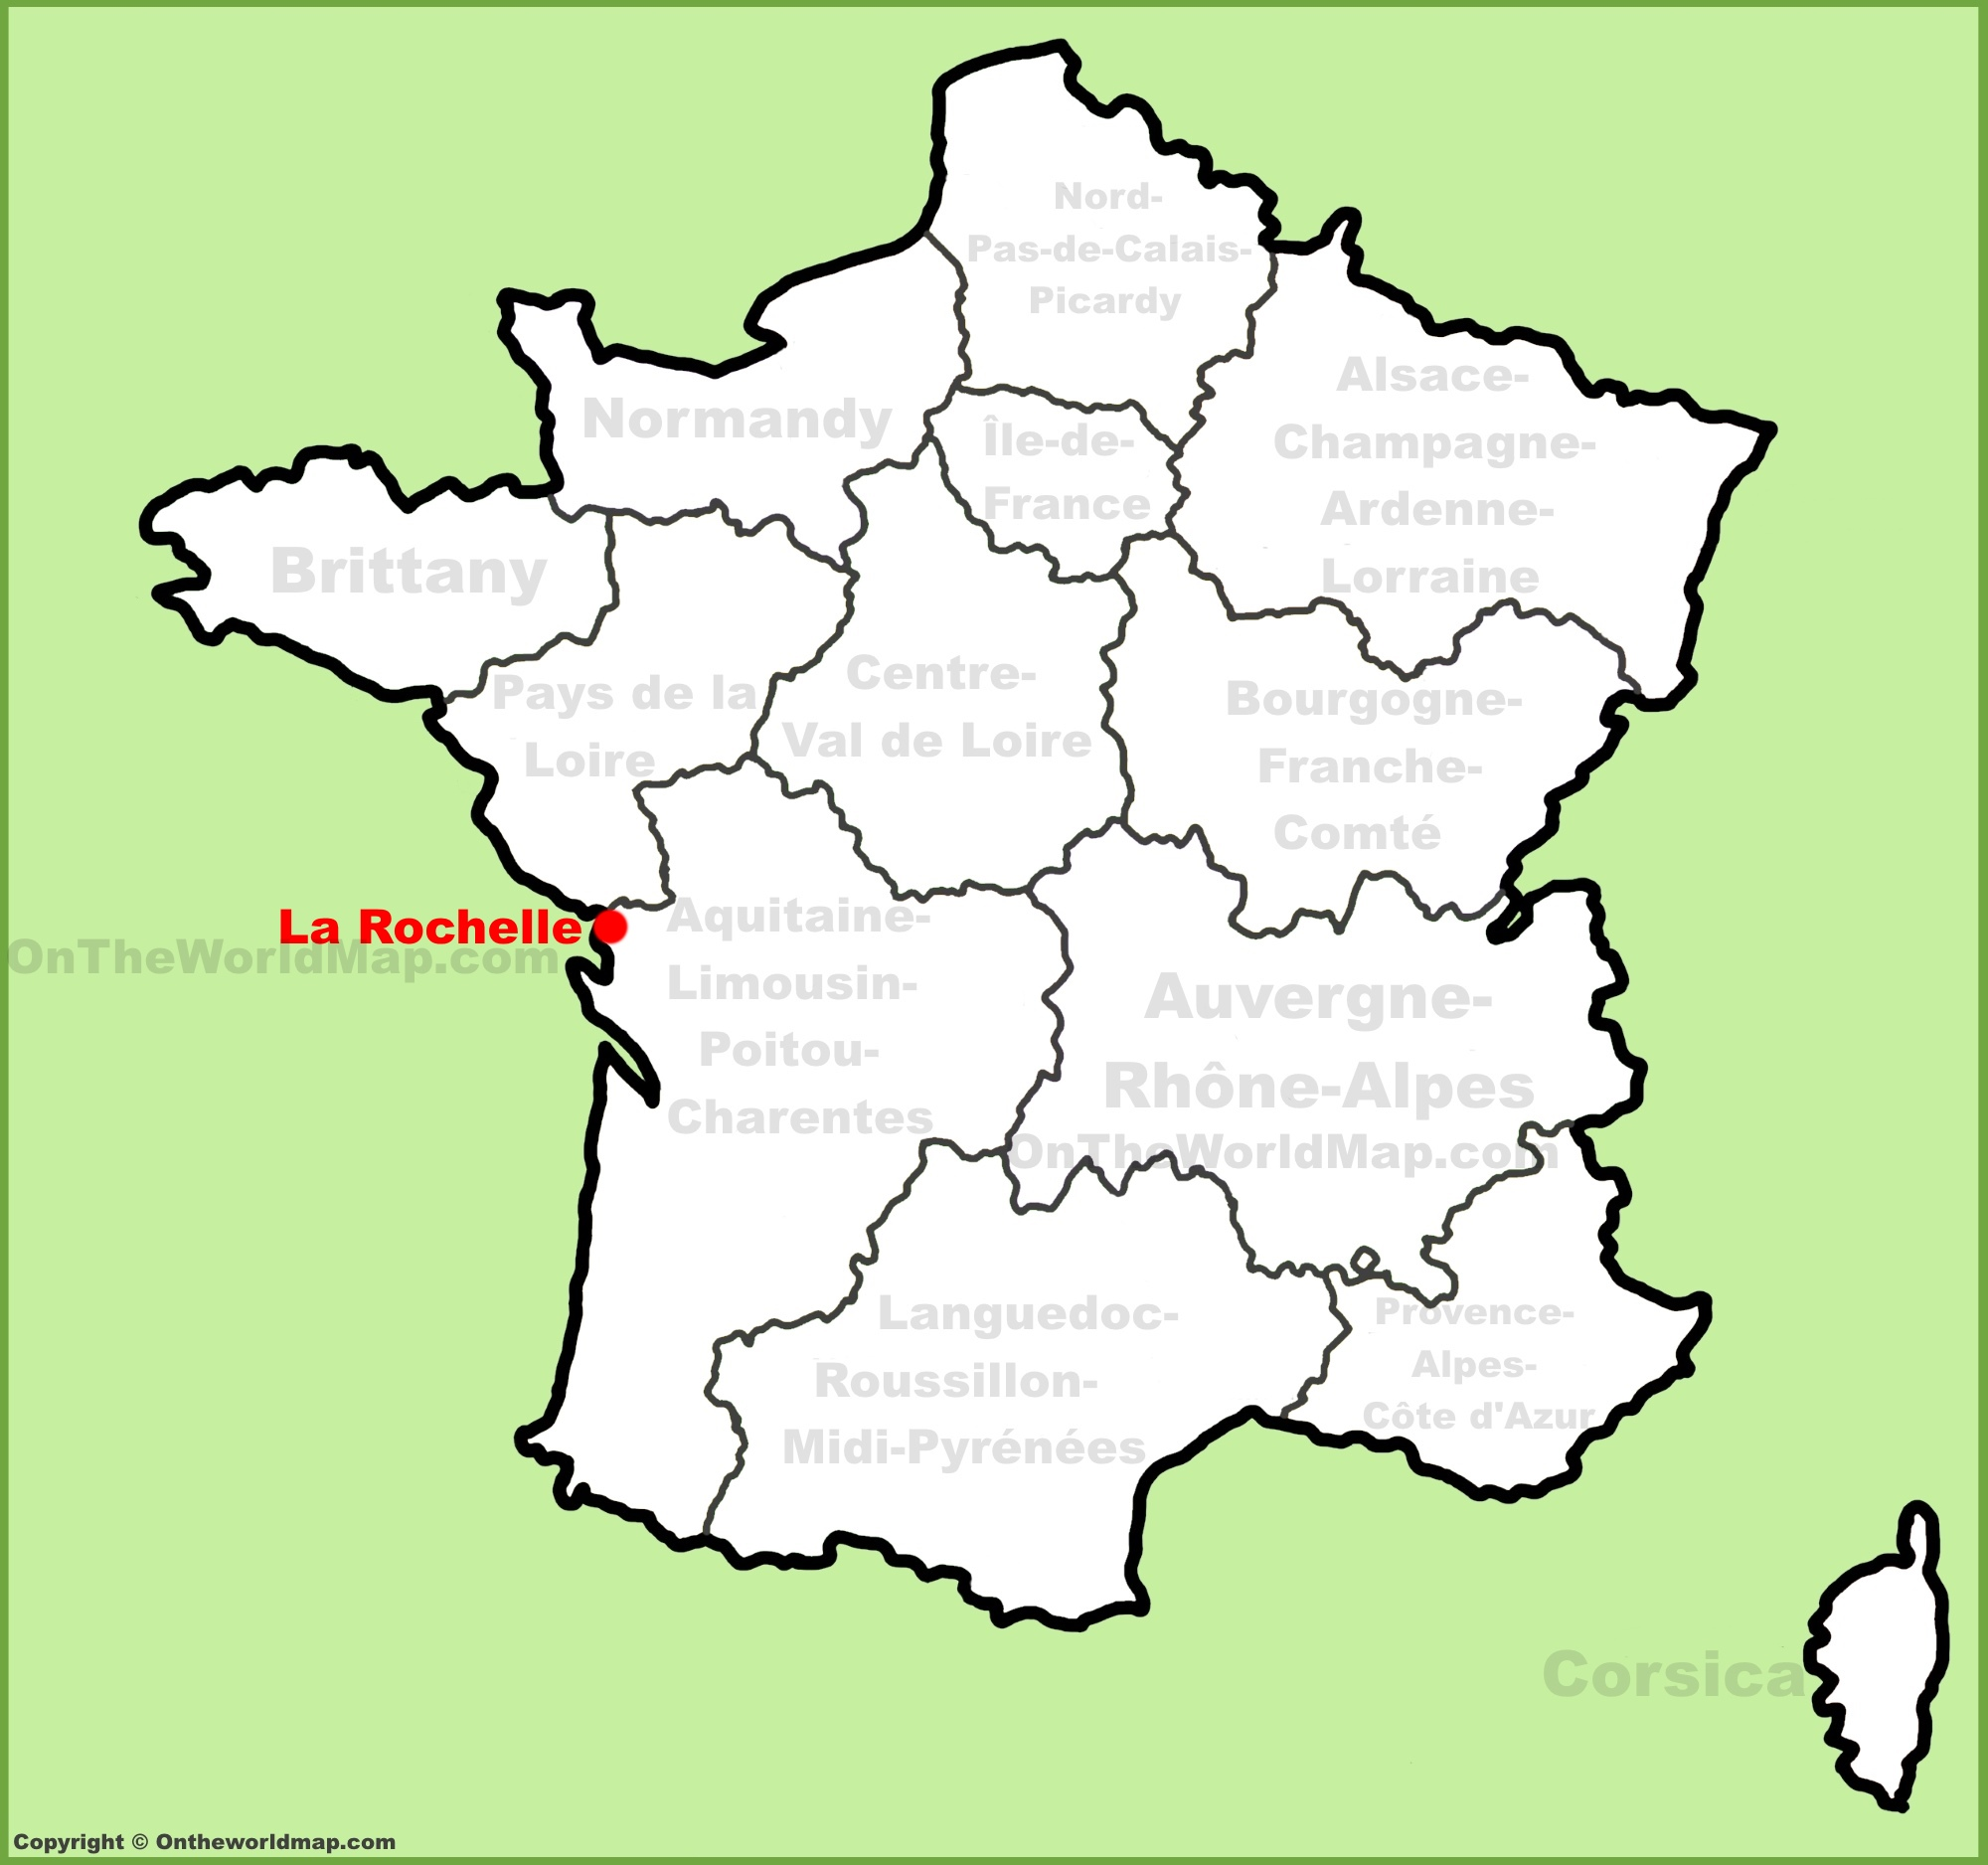 La France Map.La Rochelle Location On The France Map